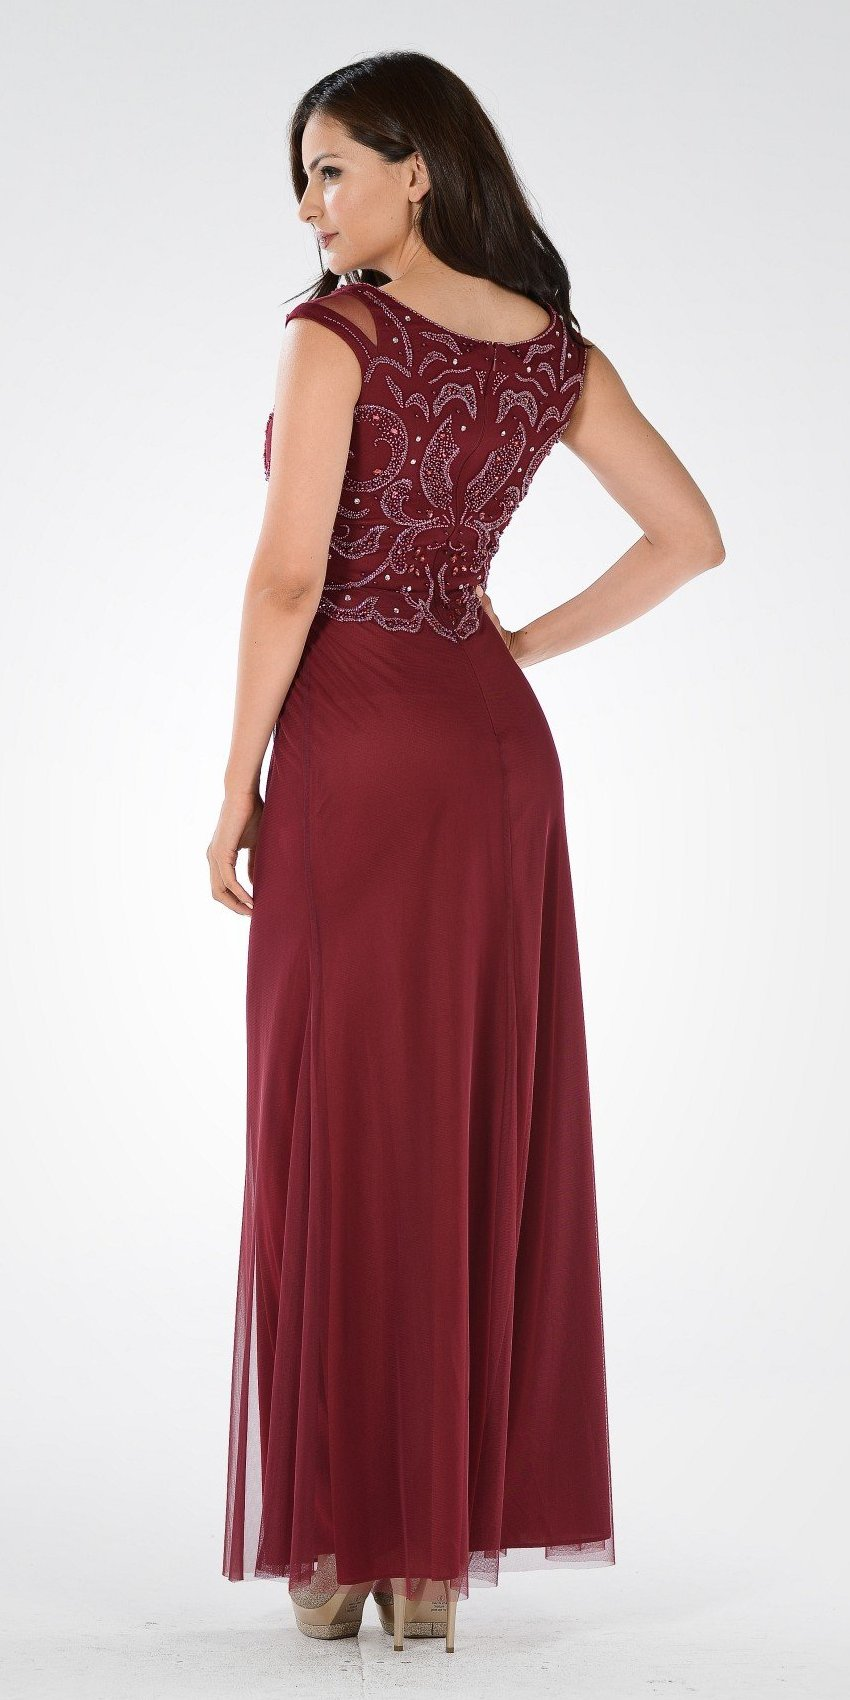 Burgundy Beaded Bodice Fit and Flare Mother of the Bride Dress Long